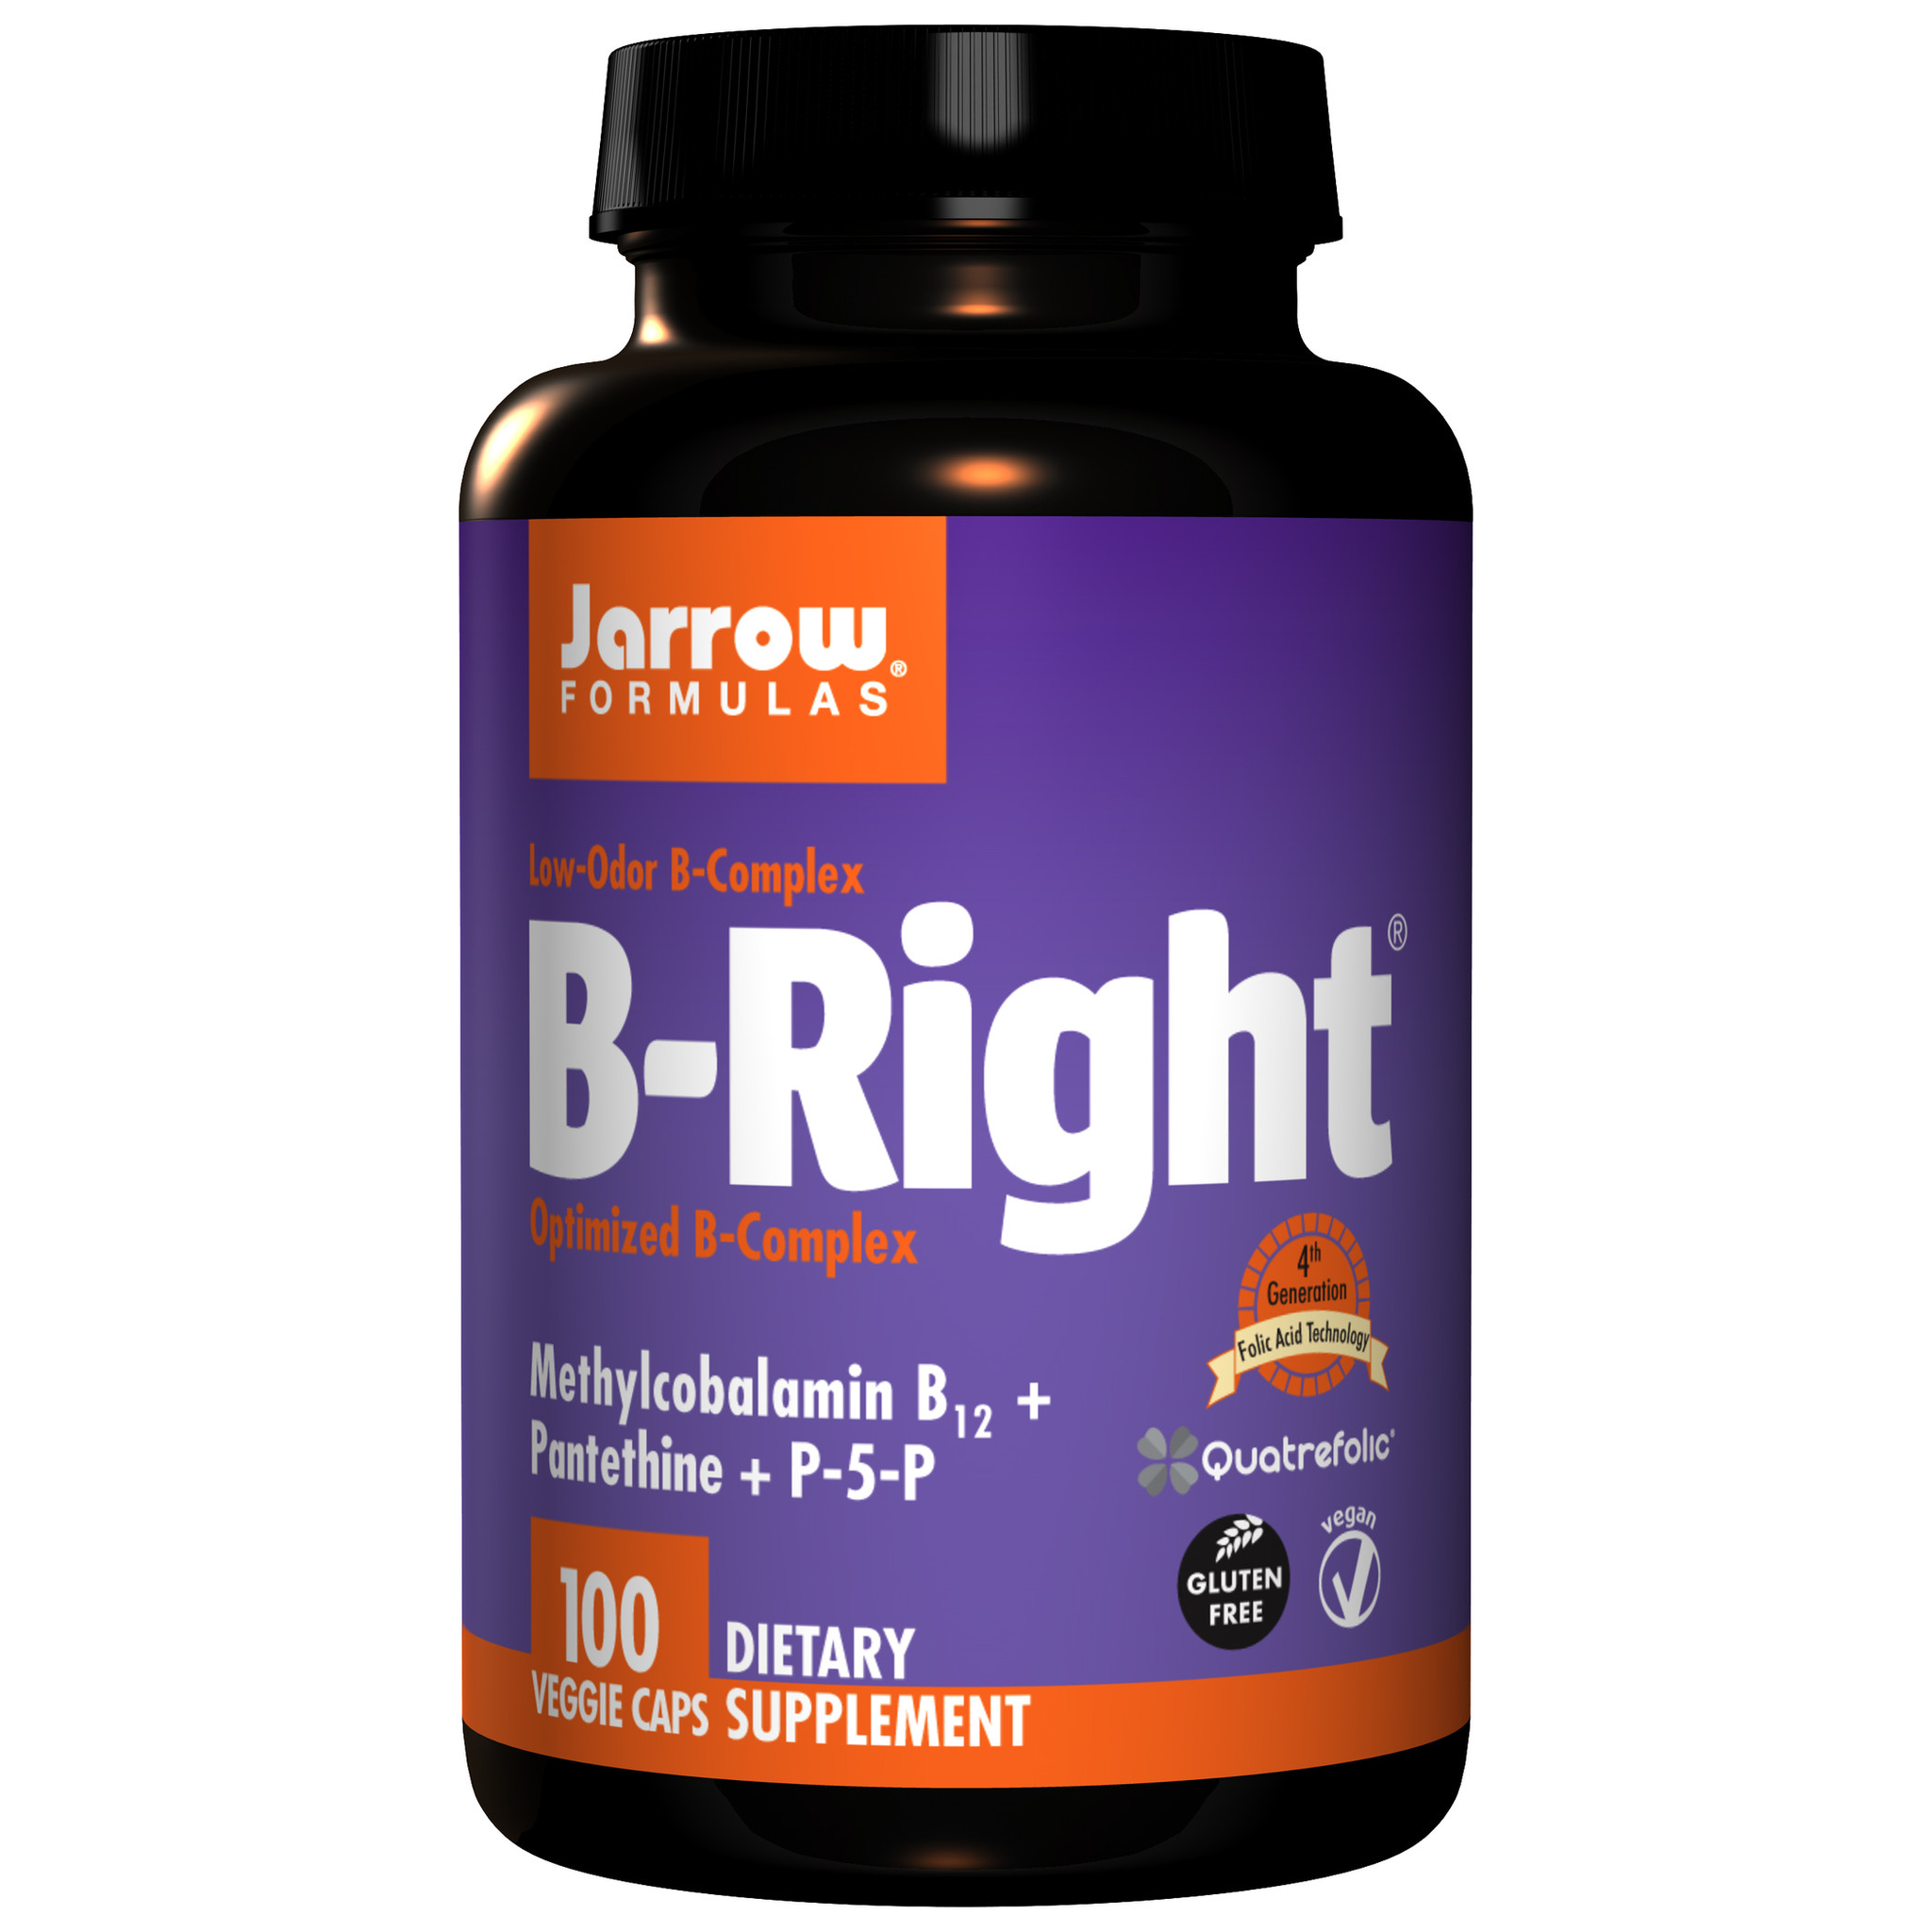 WHAT DOES B-RIGHT DO? B-Right is a carefully-balanced, low-odor vitamin B-Complex formula. Methyl folate ((6S)-5-methyltetrahydrofolic acid or (6S)-5-MTHF) is the most biologically active form of foli